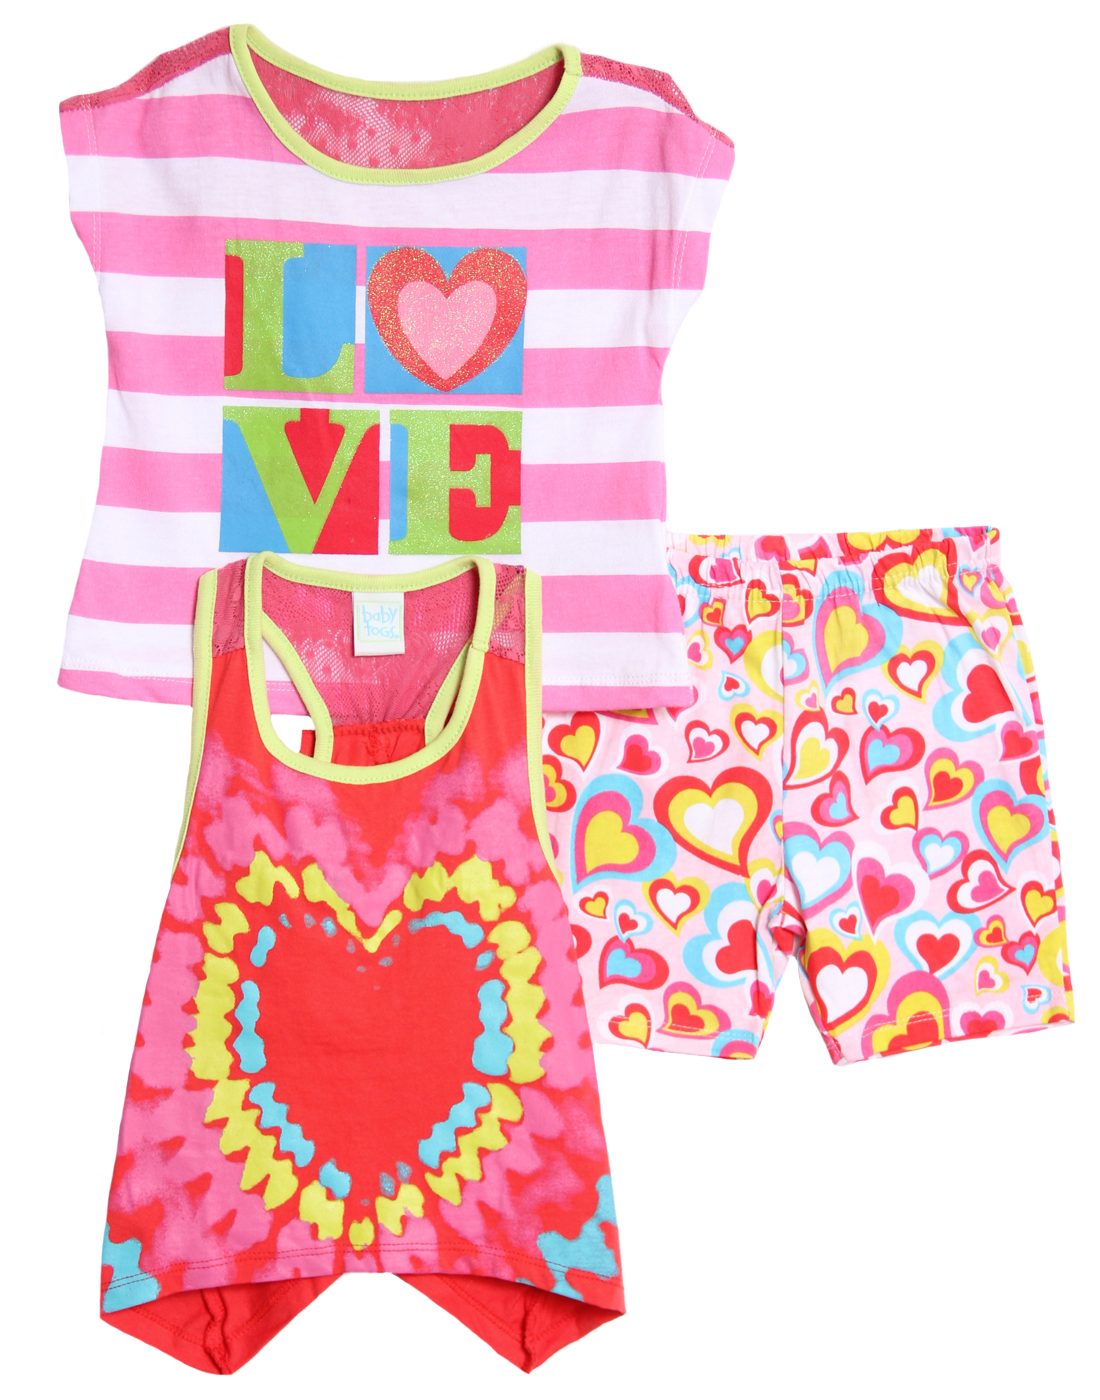 Baby Togs Infant Baby Girls 3 Piece Racerback Tank Top Striped Shirt Knit Shorts at Sears.com